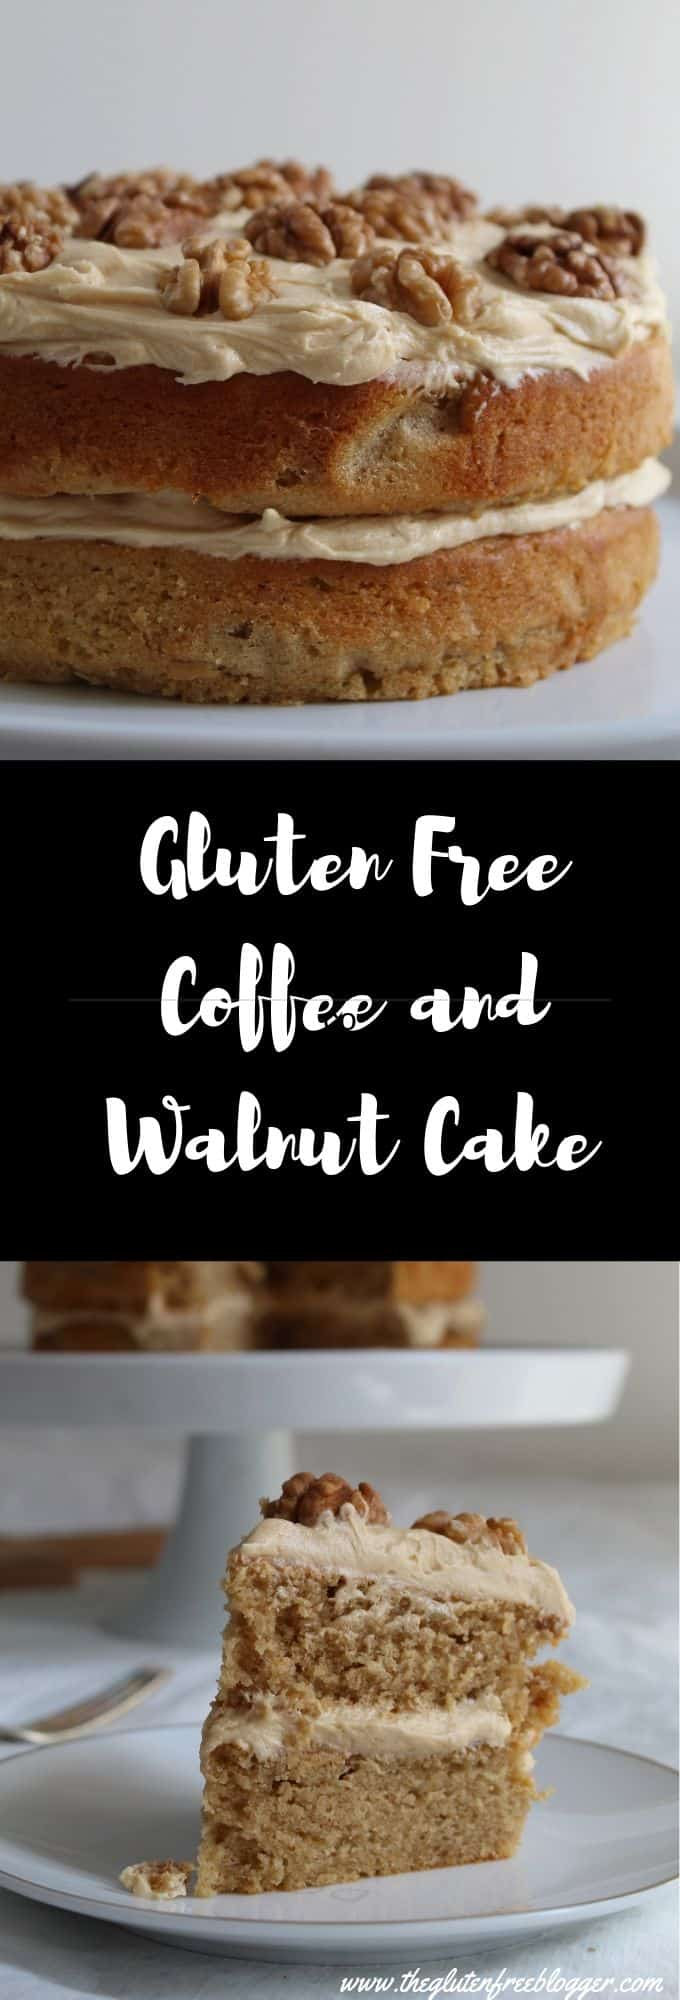 GLUTEN FREE COFFEE AND WALNUT CAKE RECIPE WITH BUTTERMILK - easy gluten free bakes - baking - coffee cake - coeliac recipe